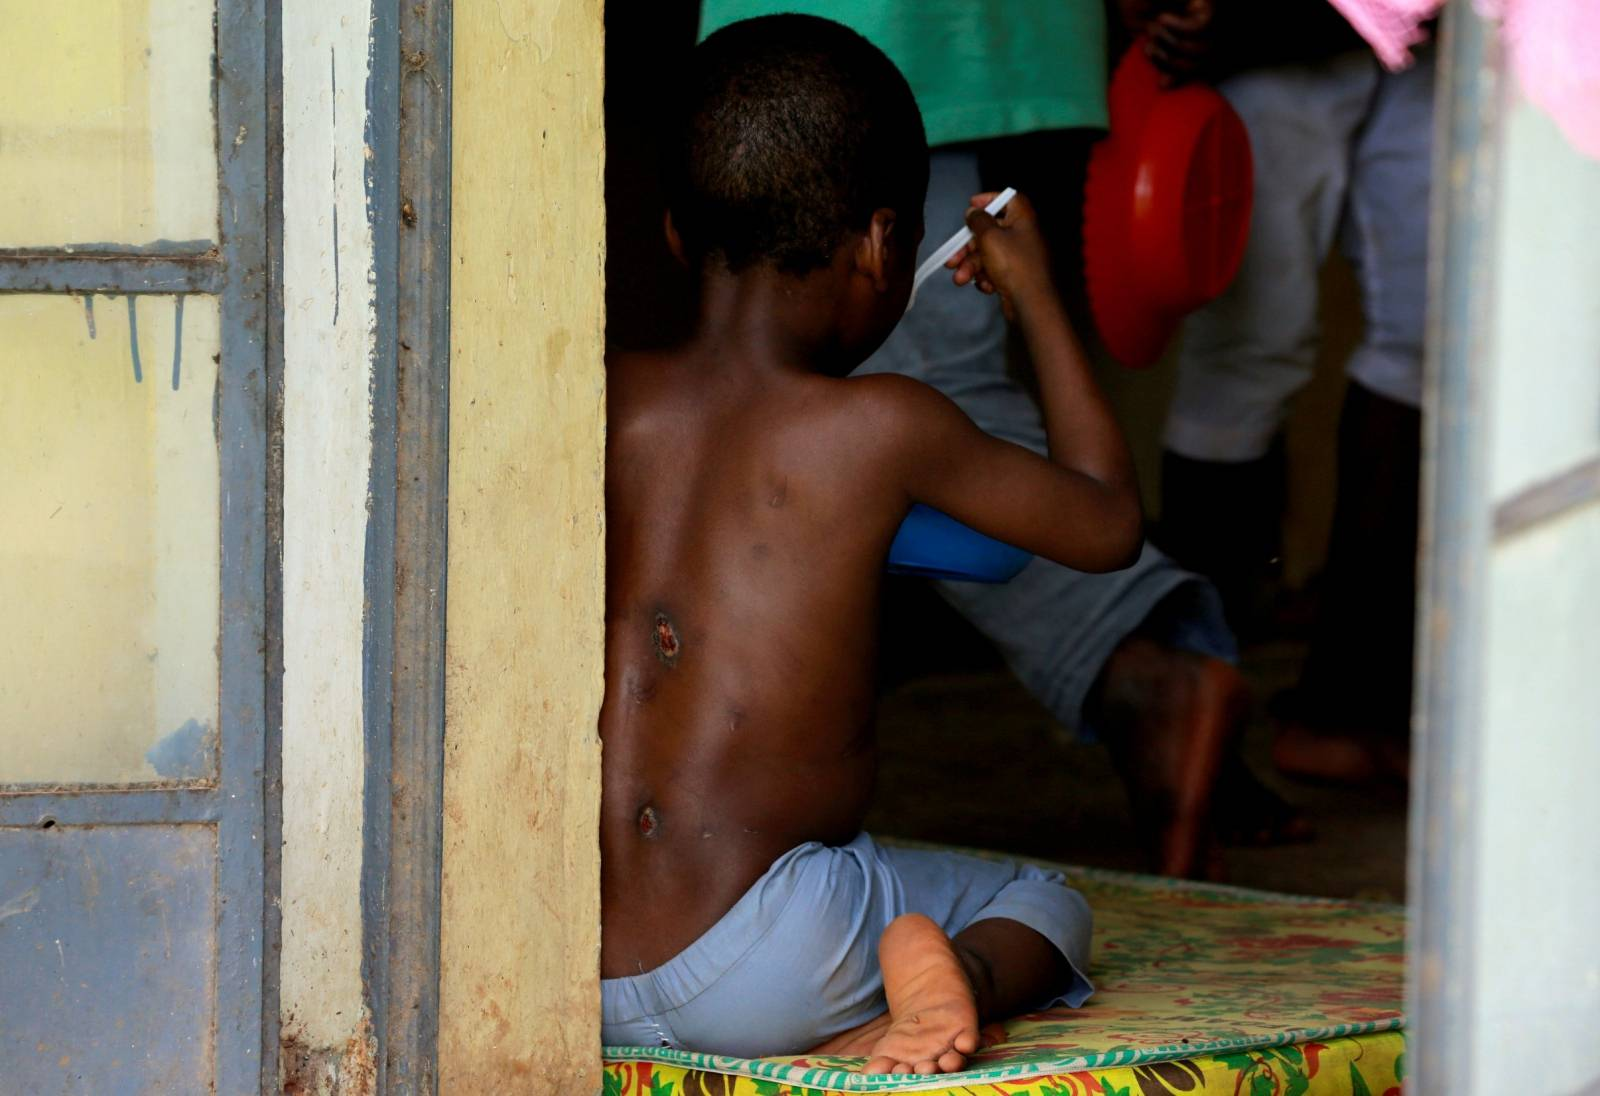 One of the children rescued by police, with bruises on his back, eats at the Hajj transit camp in Kaduna